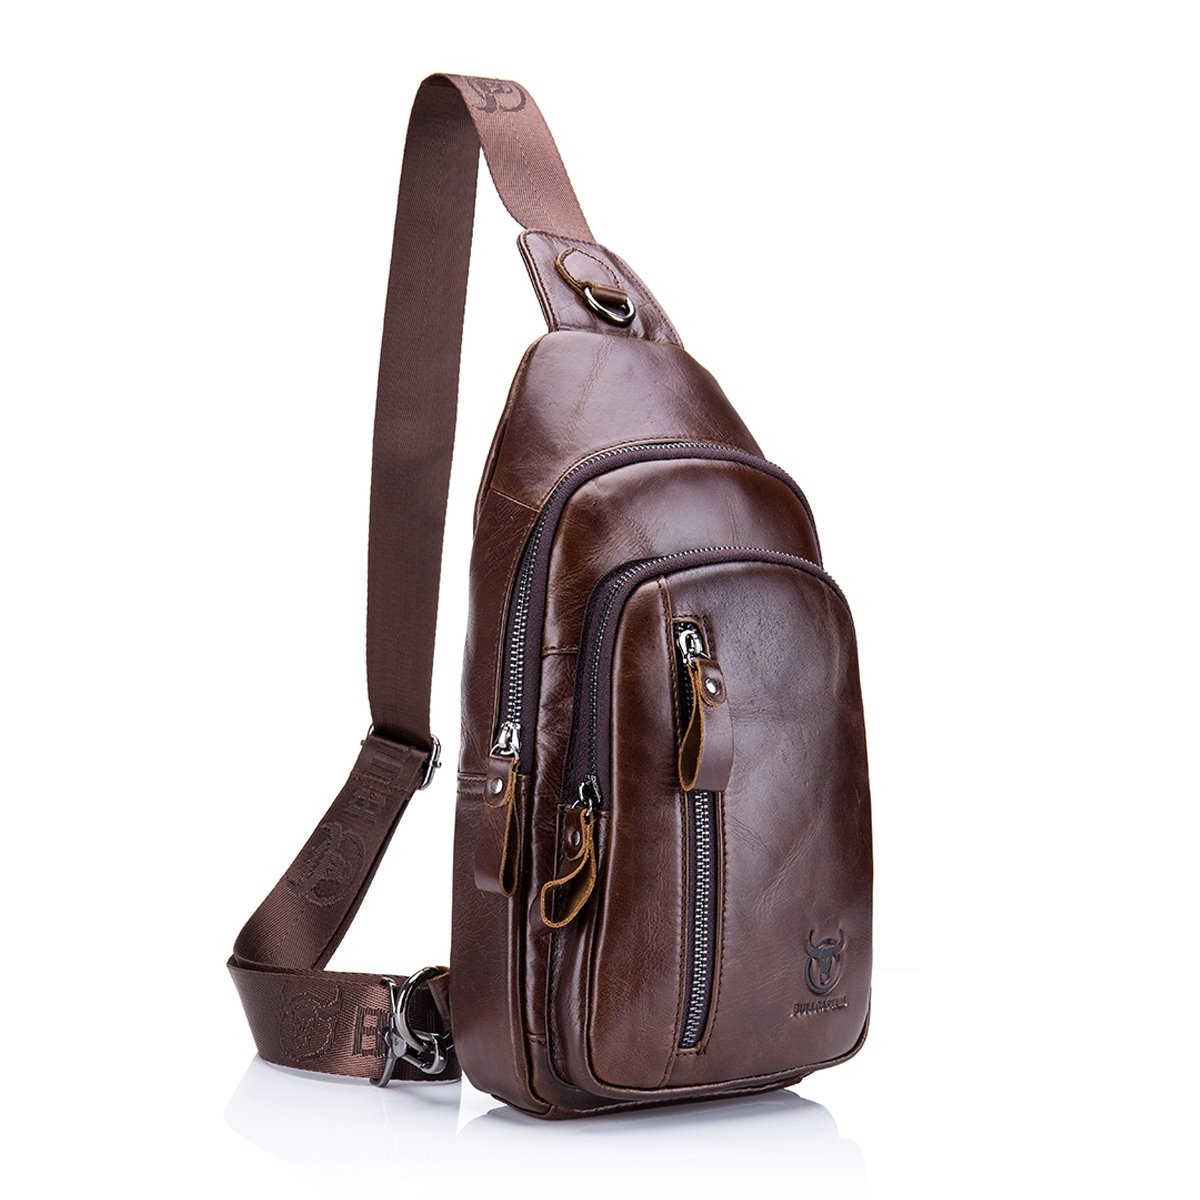 Sling Bag, Charminer Leather Chest Bag Crossbody Shoulder Business Backpack Outdoor Daypack besttoanywhere_ca CHARMINERbesttoanywhereca24